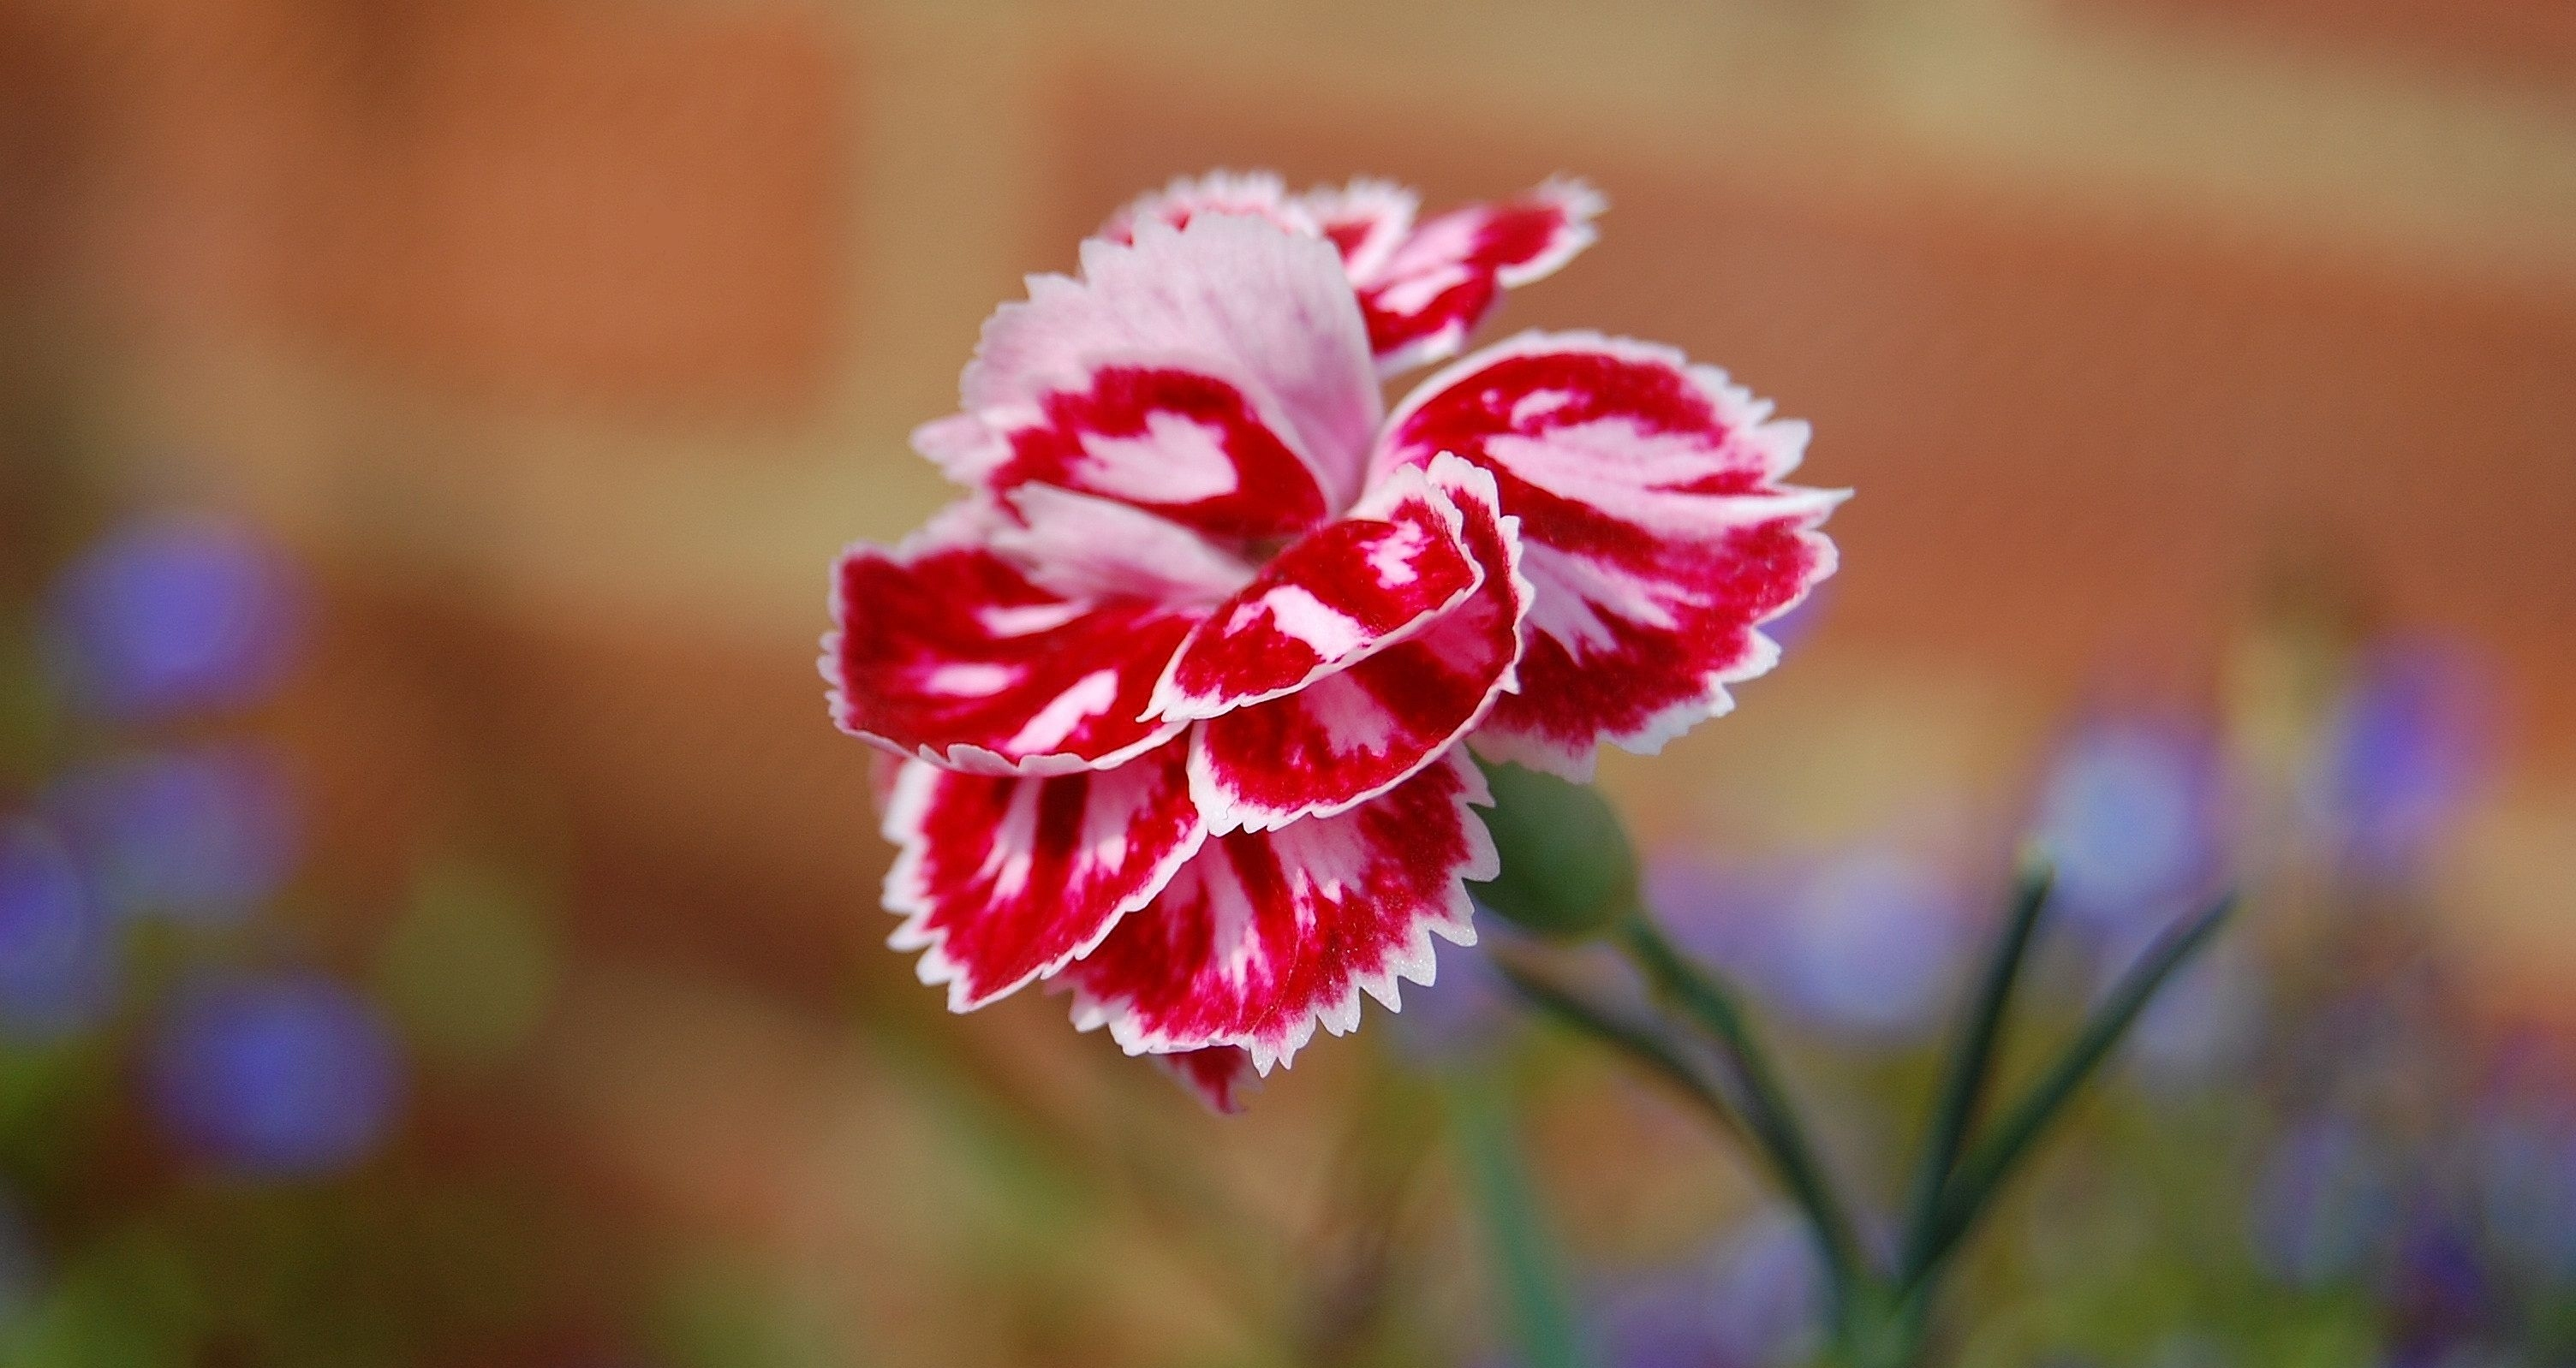 Dianthus Flower HD Wallpapers Download 3008x1598